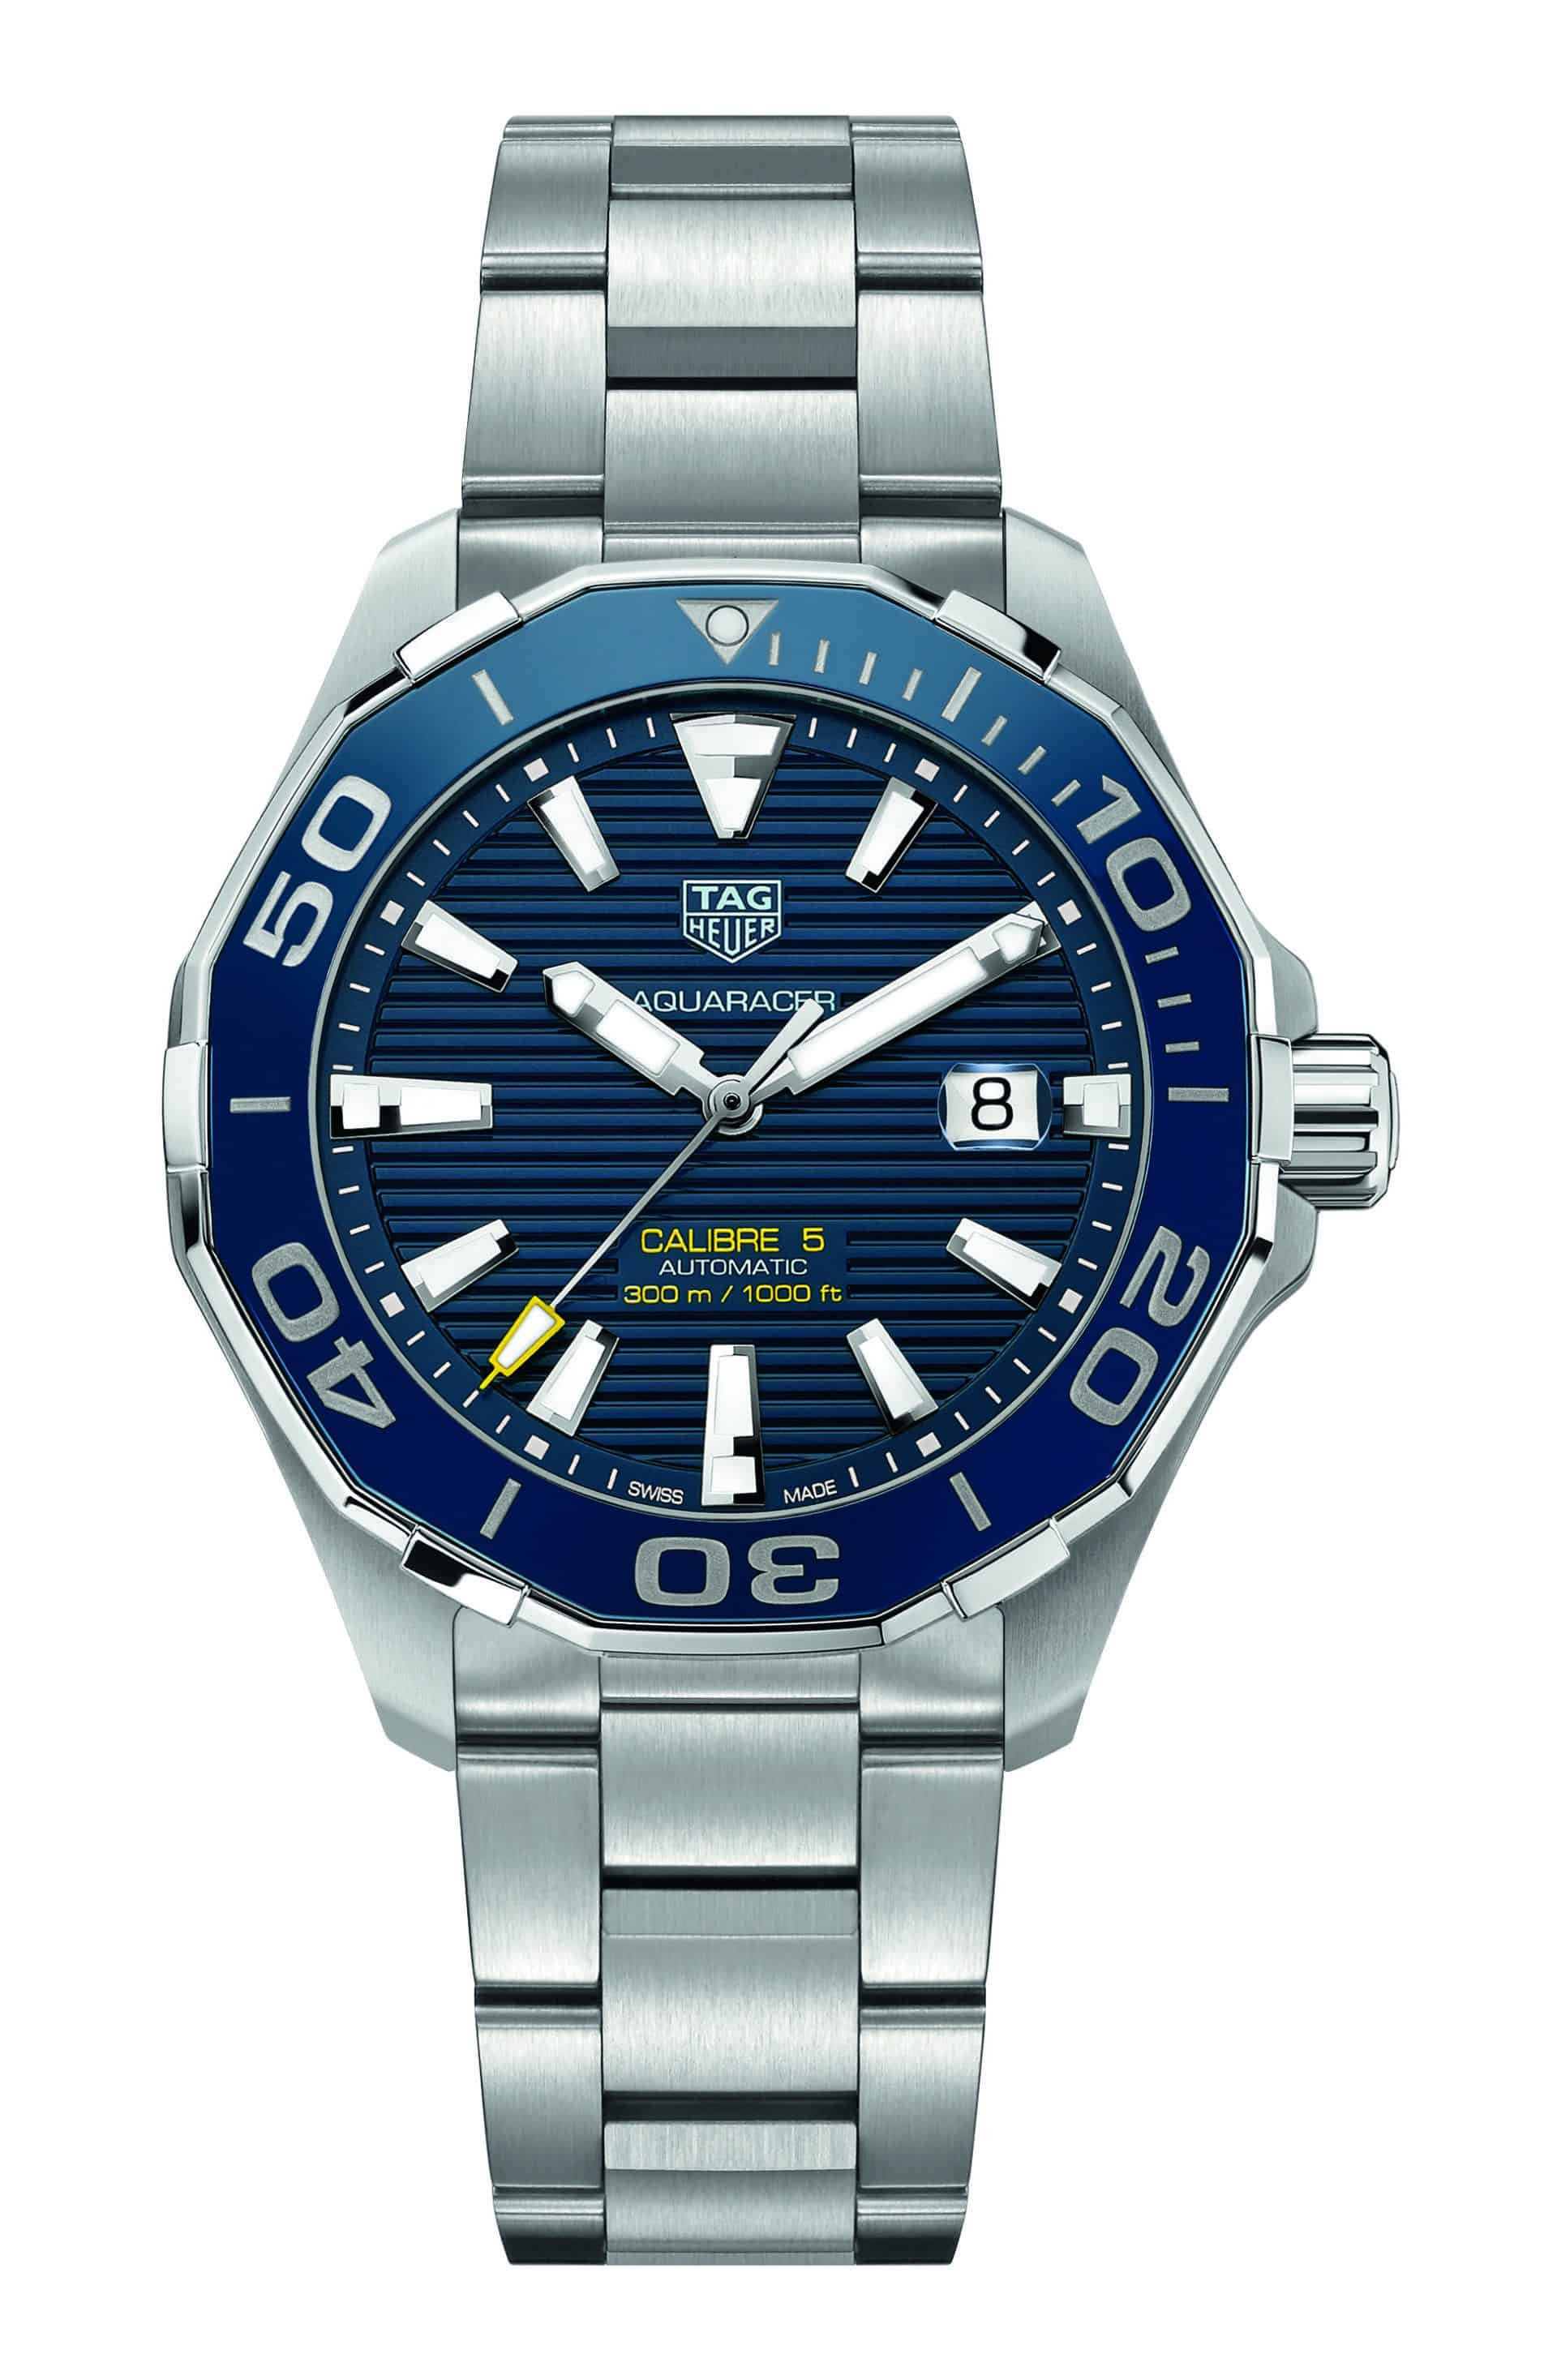 4. AQUARACER 300M MEN 2016_PHOTOS_WAY201B.BA0927 2016 HD